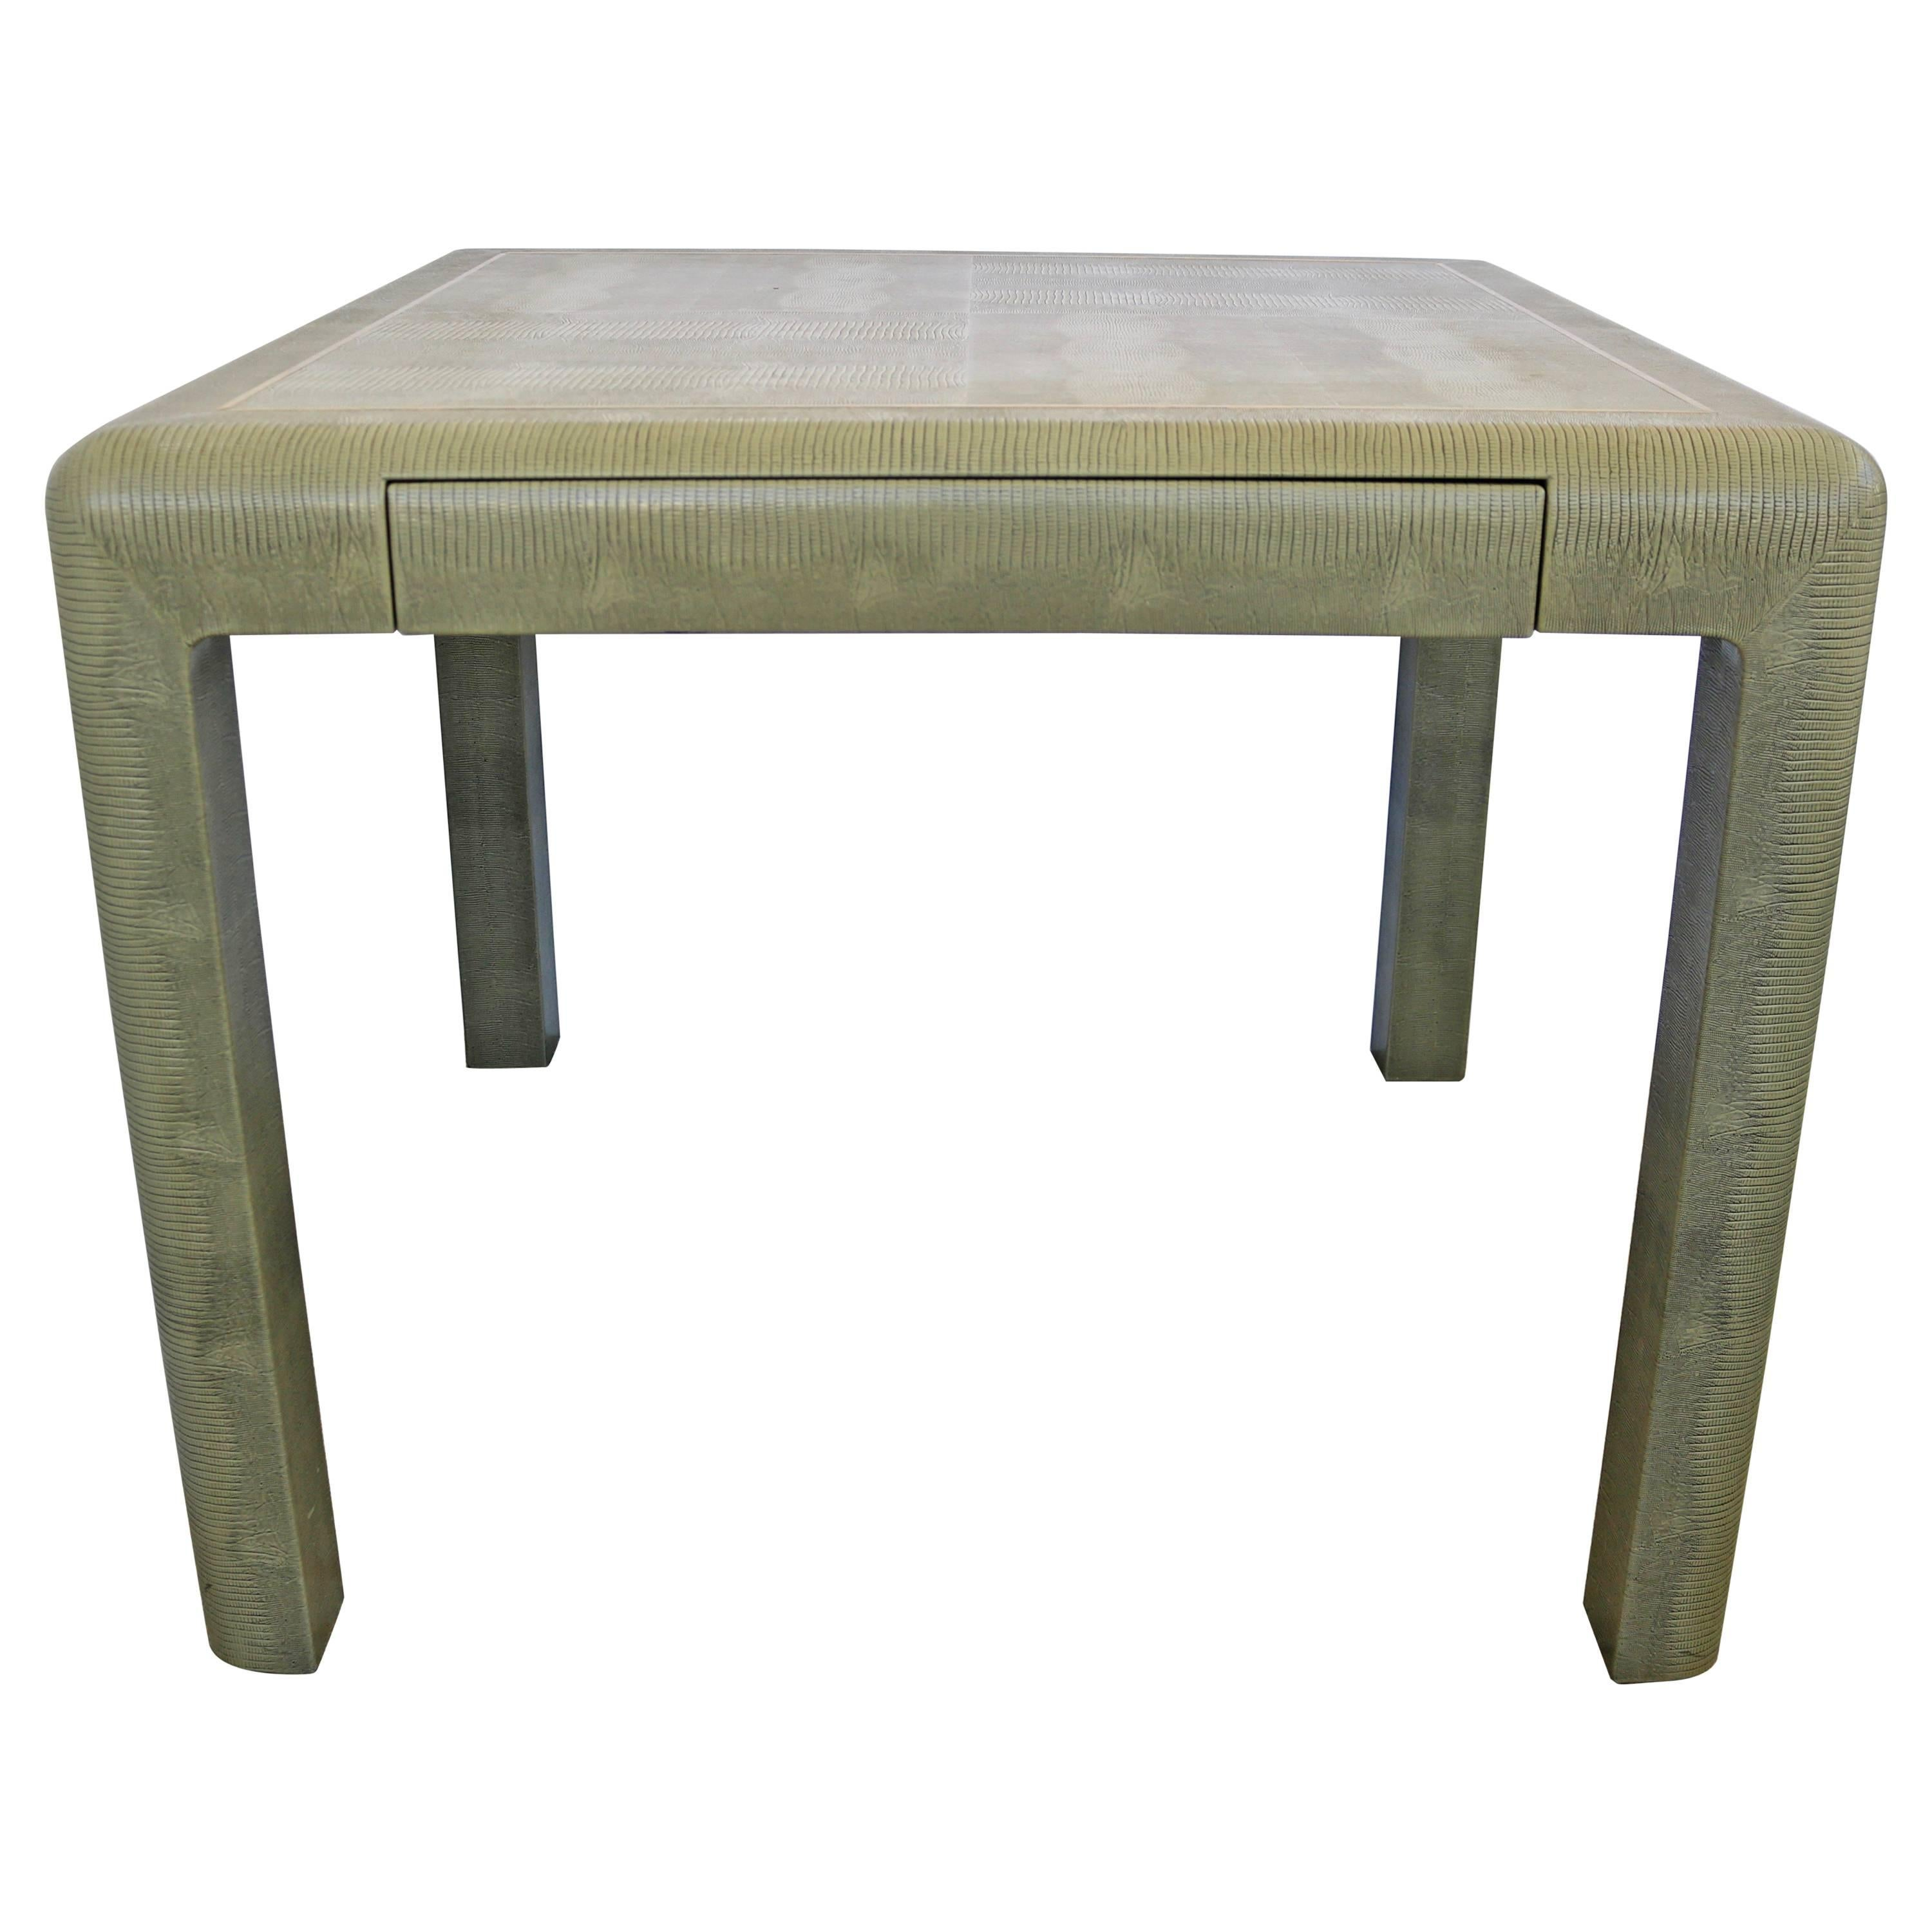 Karl Springer Game Table In Green Faux Lizard With Brass Trim, Circa 1986